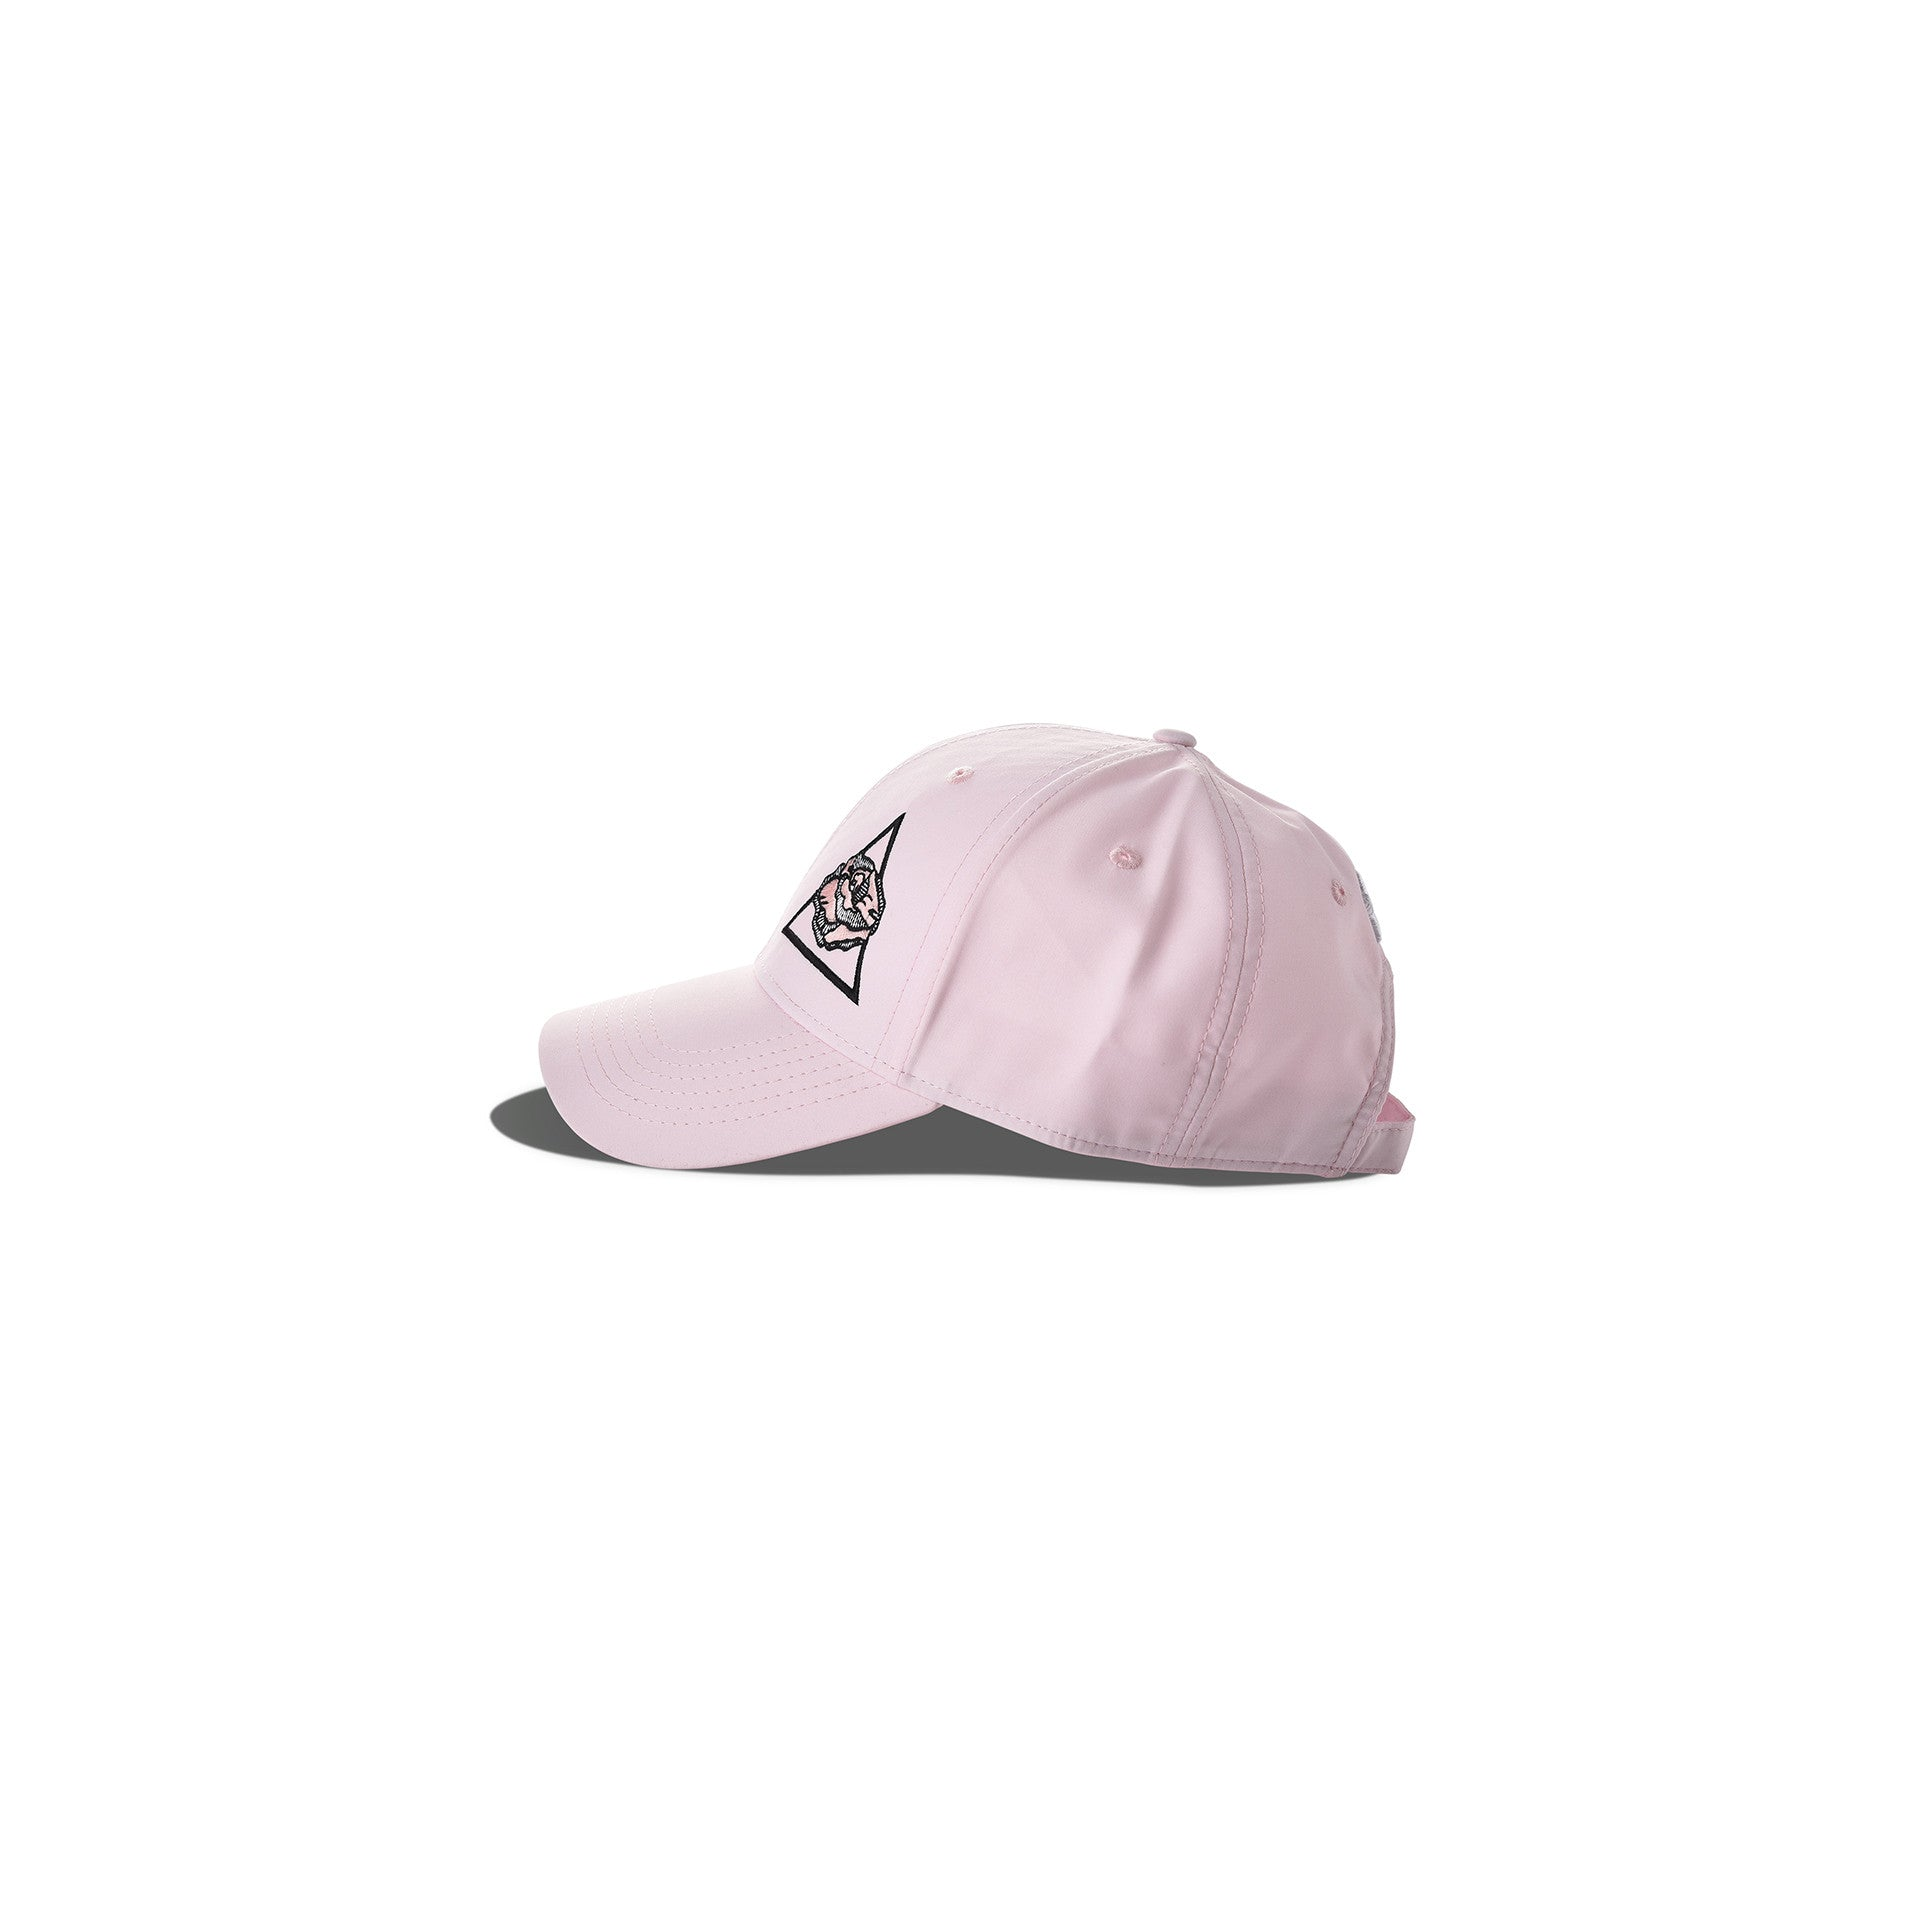 Luna Blanche Side of LB Rose Hand Drawn Cap